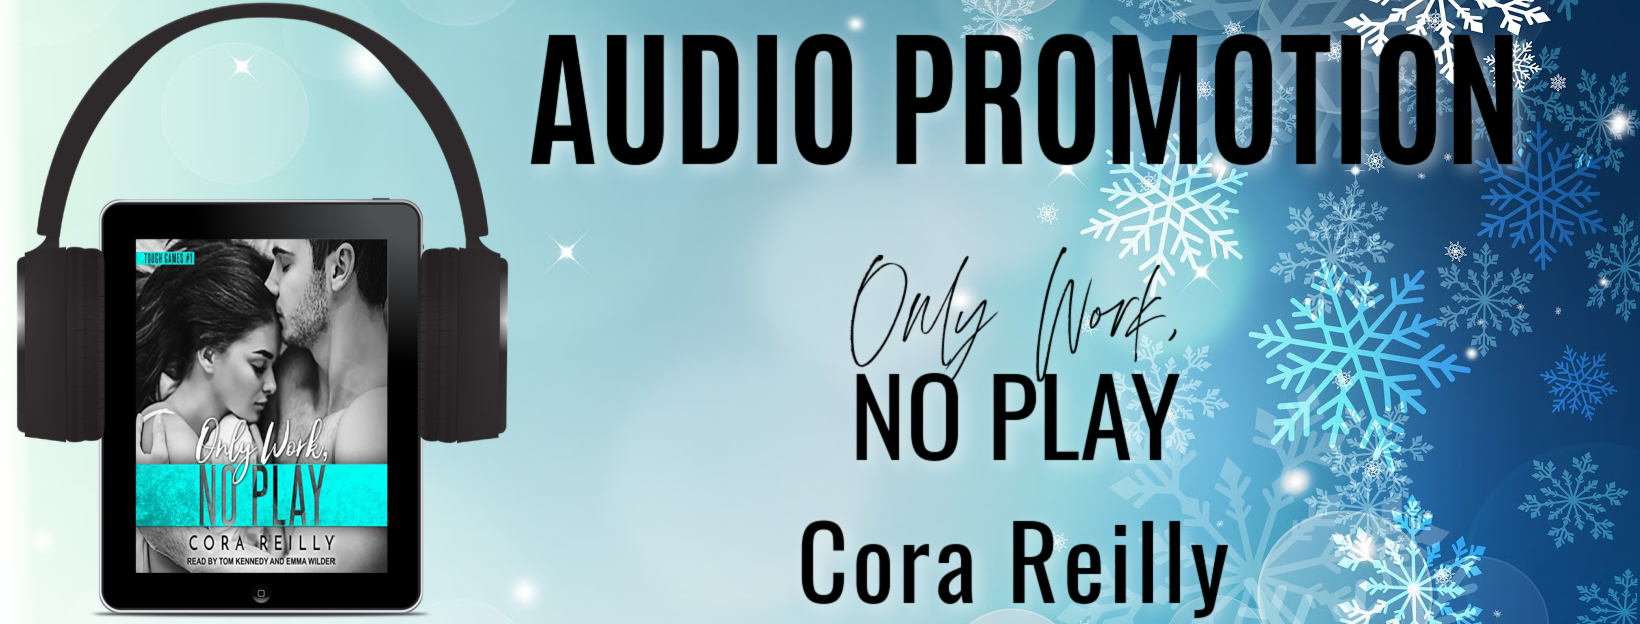 Only Work No Play audio promo-3